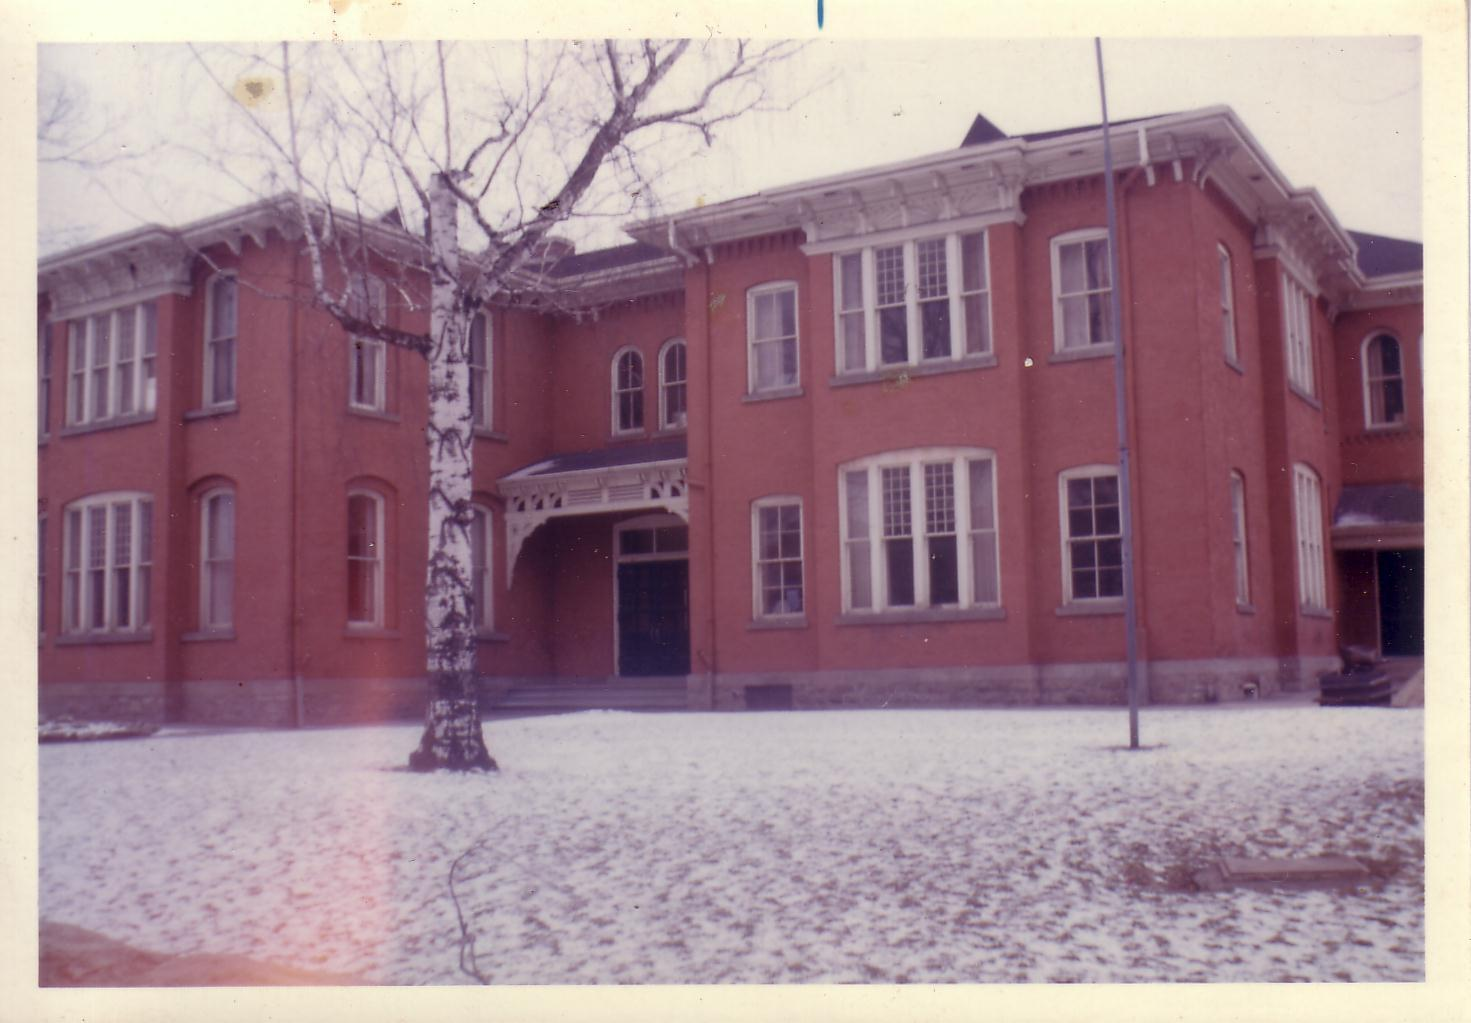 Simcoe Street School. Colour photograph, showing brick schoolhouse with a stone base. Hip roof with elaborate cornices and corbels along the projection of the roof. There are large windows with a slight arch. A willow tree stands in front of the building, no leaves as the photo was taken during the winter; snow is on the ground.